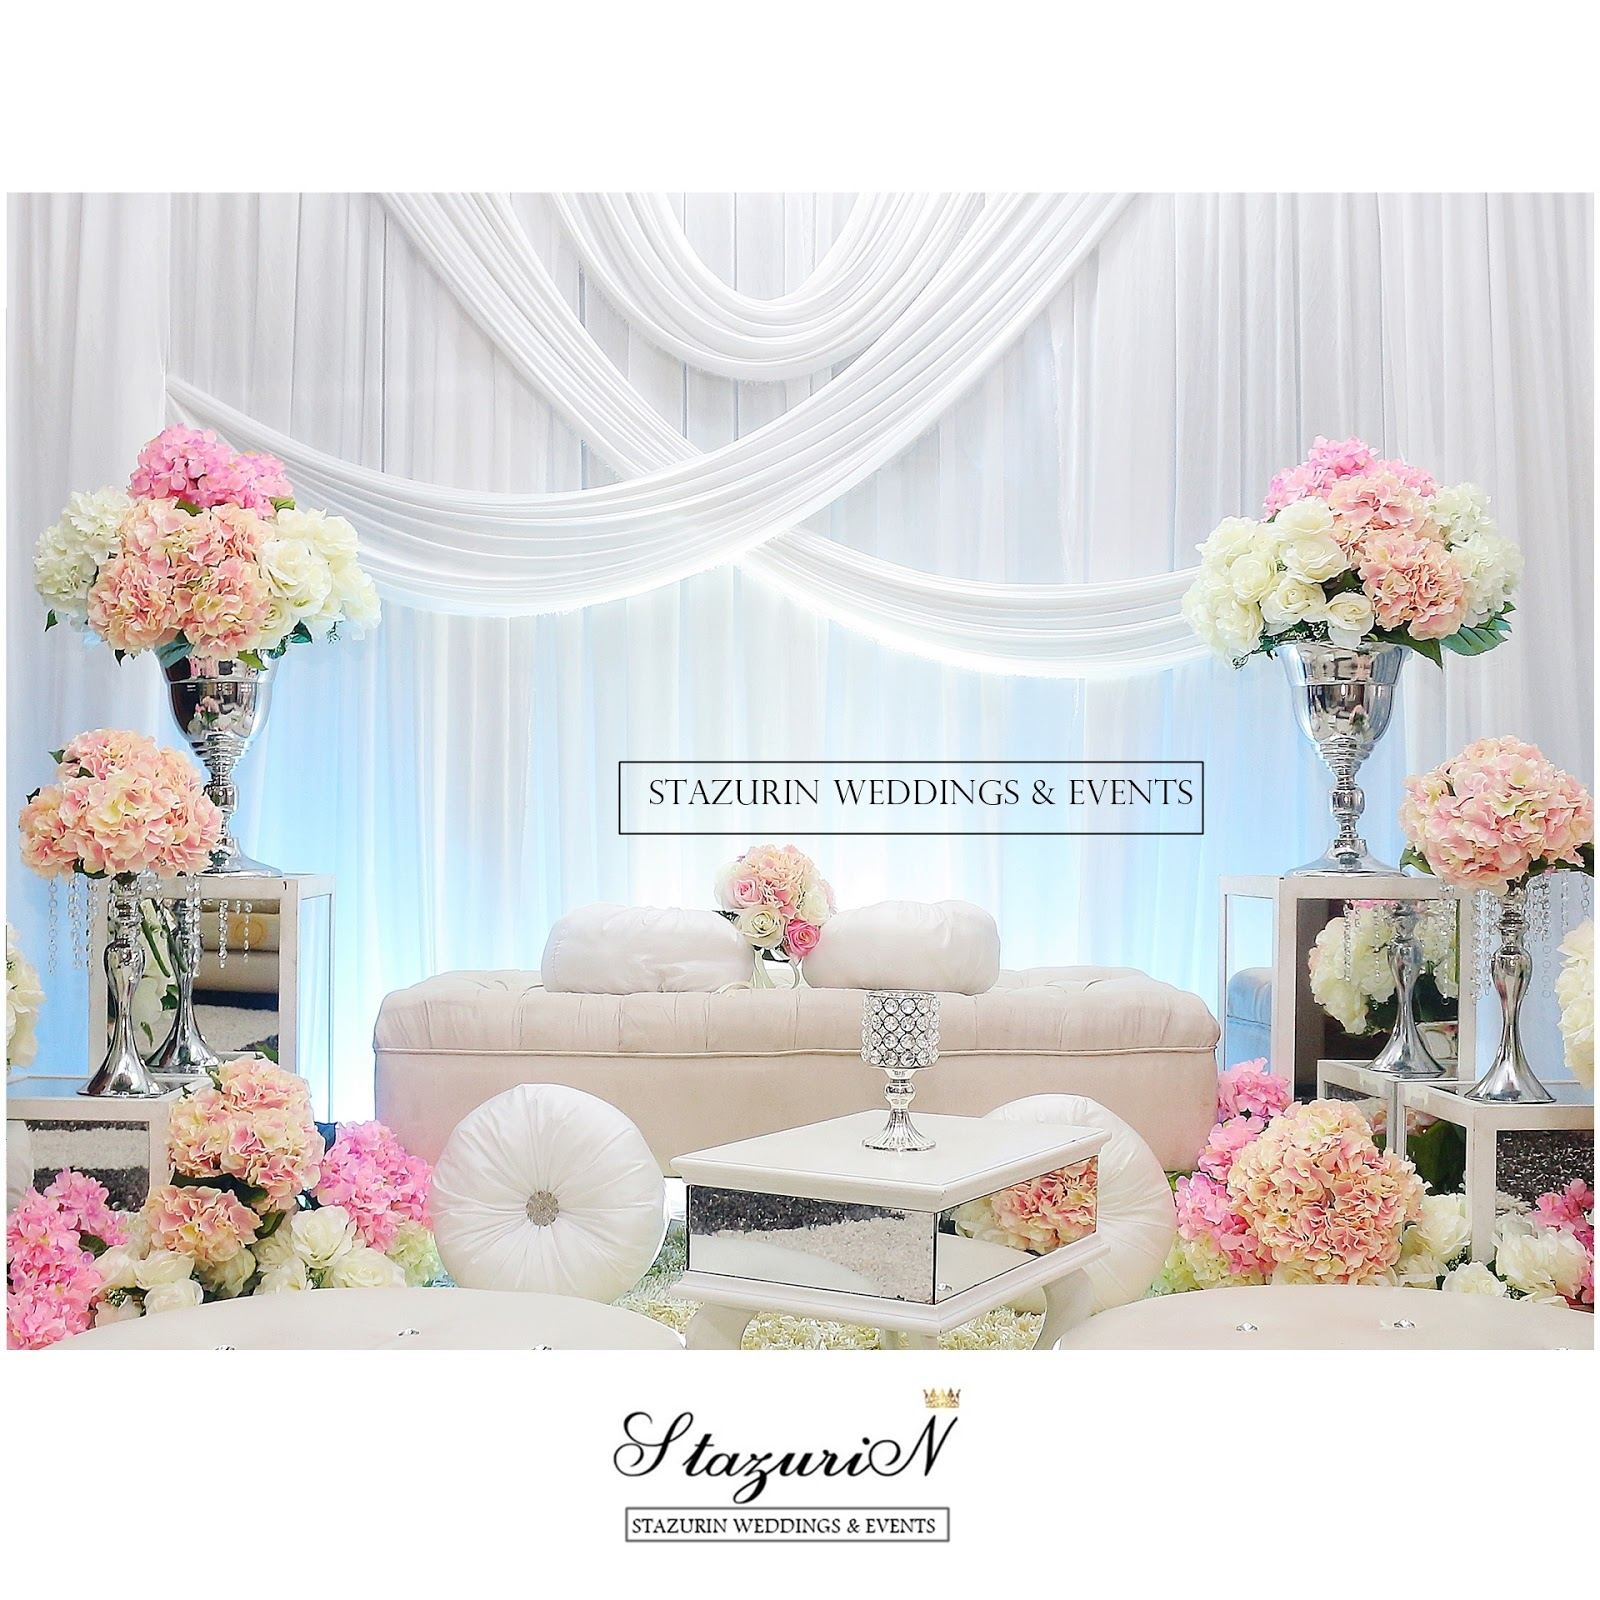 Elegant indian wedding decoration kajang wedding pelaminnikah pelamin tunang pelamin warna pastel stazurinweddings wedding tray decoration junglespirit Image collections